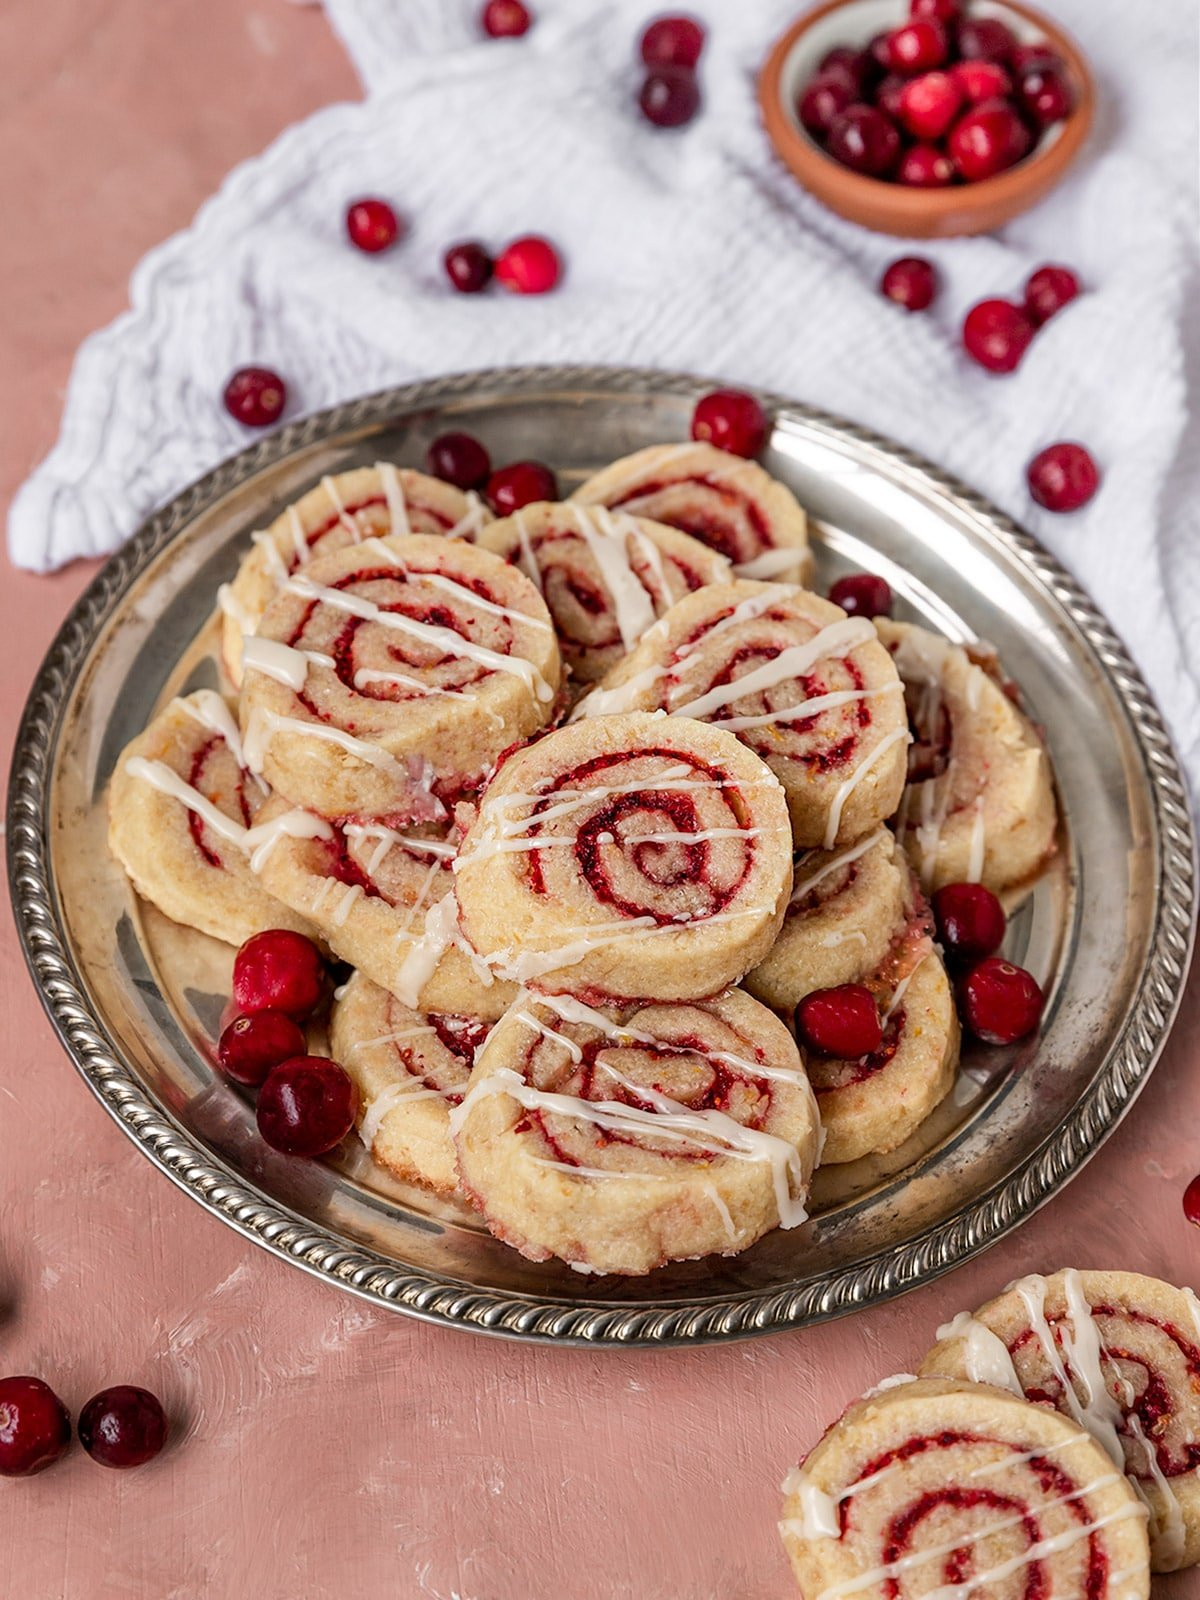 plate full of cranberry orange swirl cookies with fresh cranberries